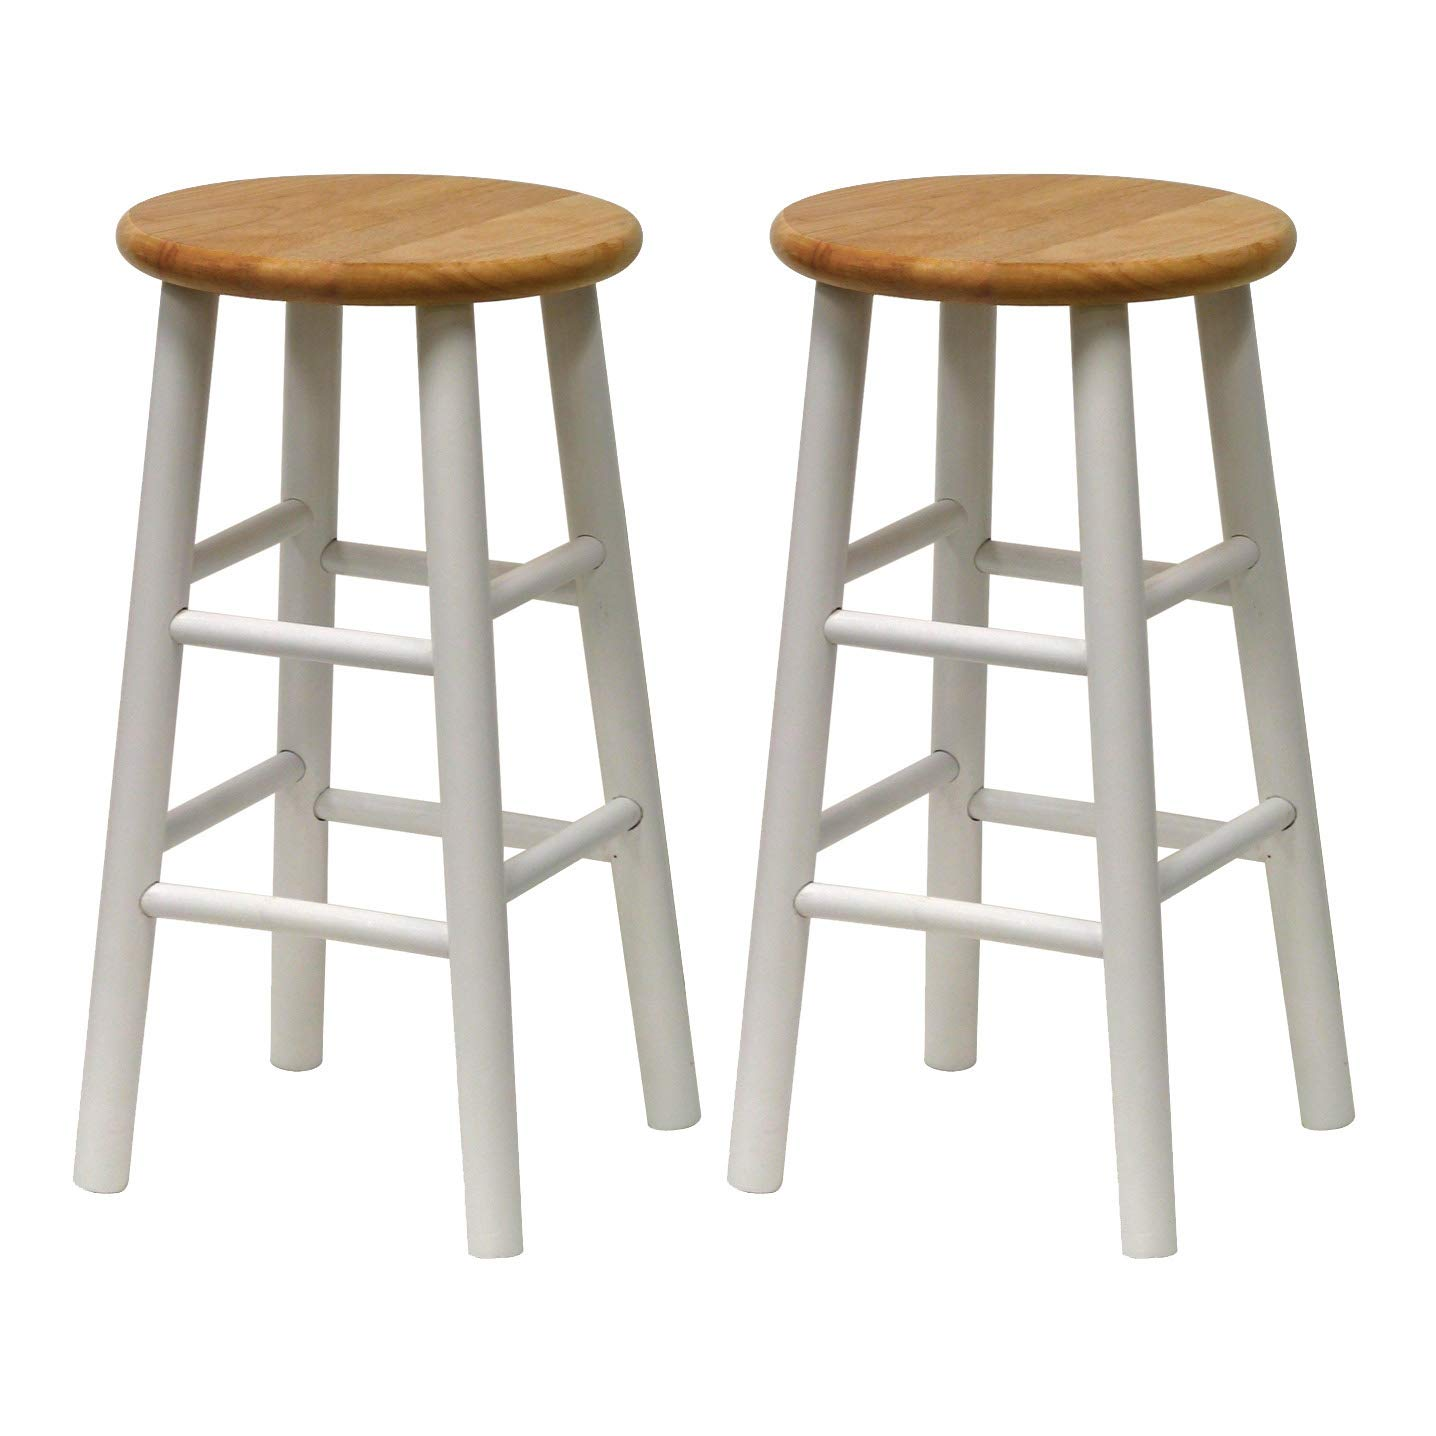 Winsome 53784 Tabby Stool, White by Winsome